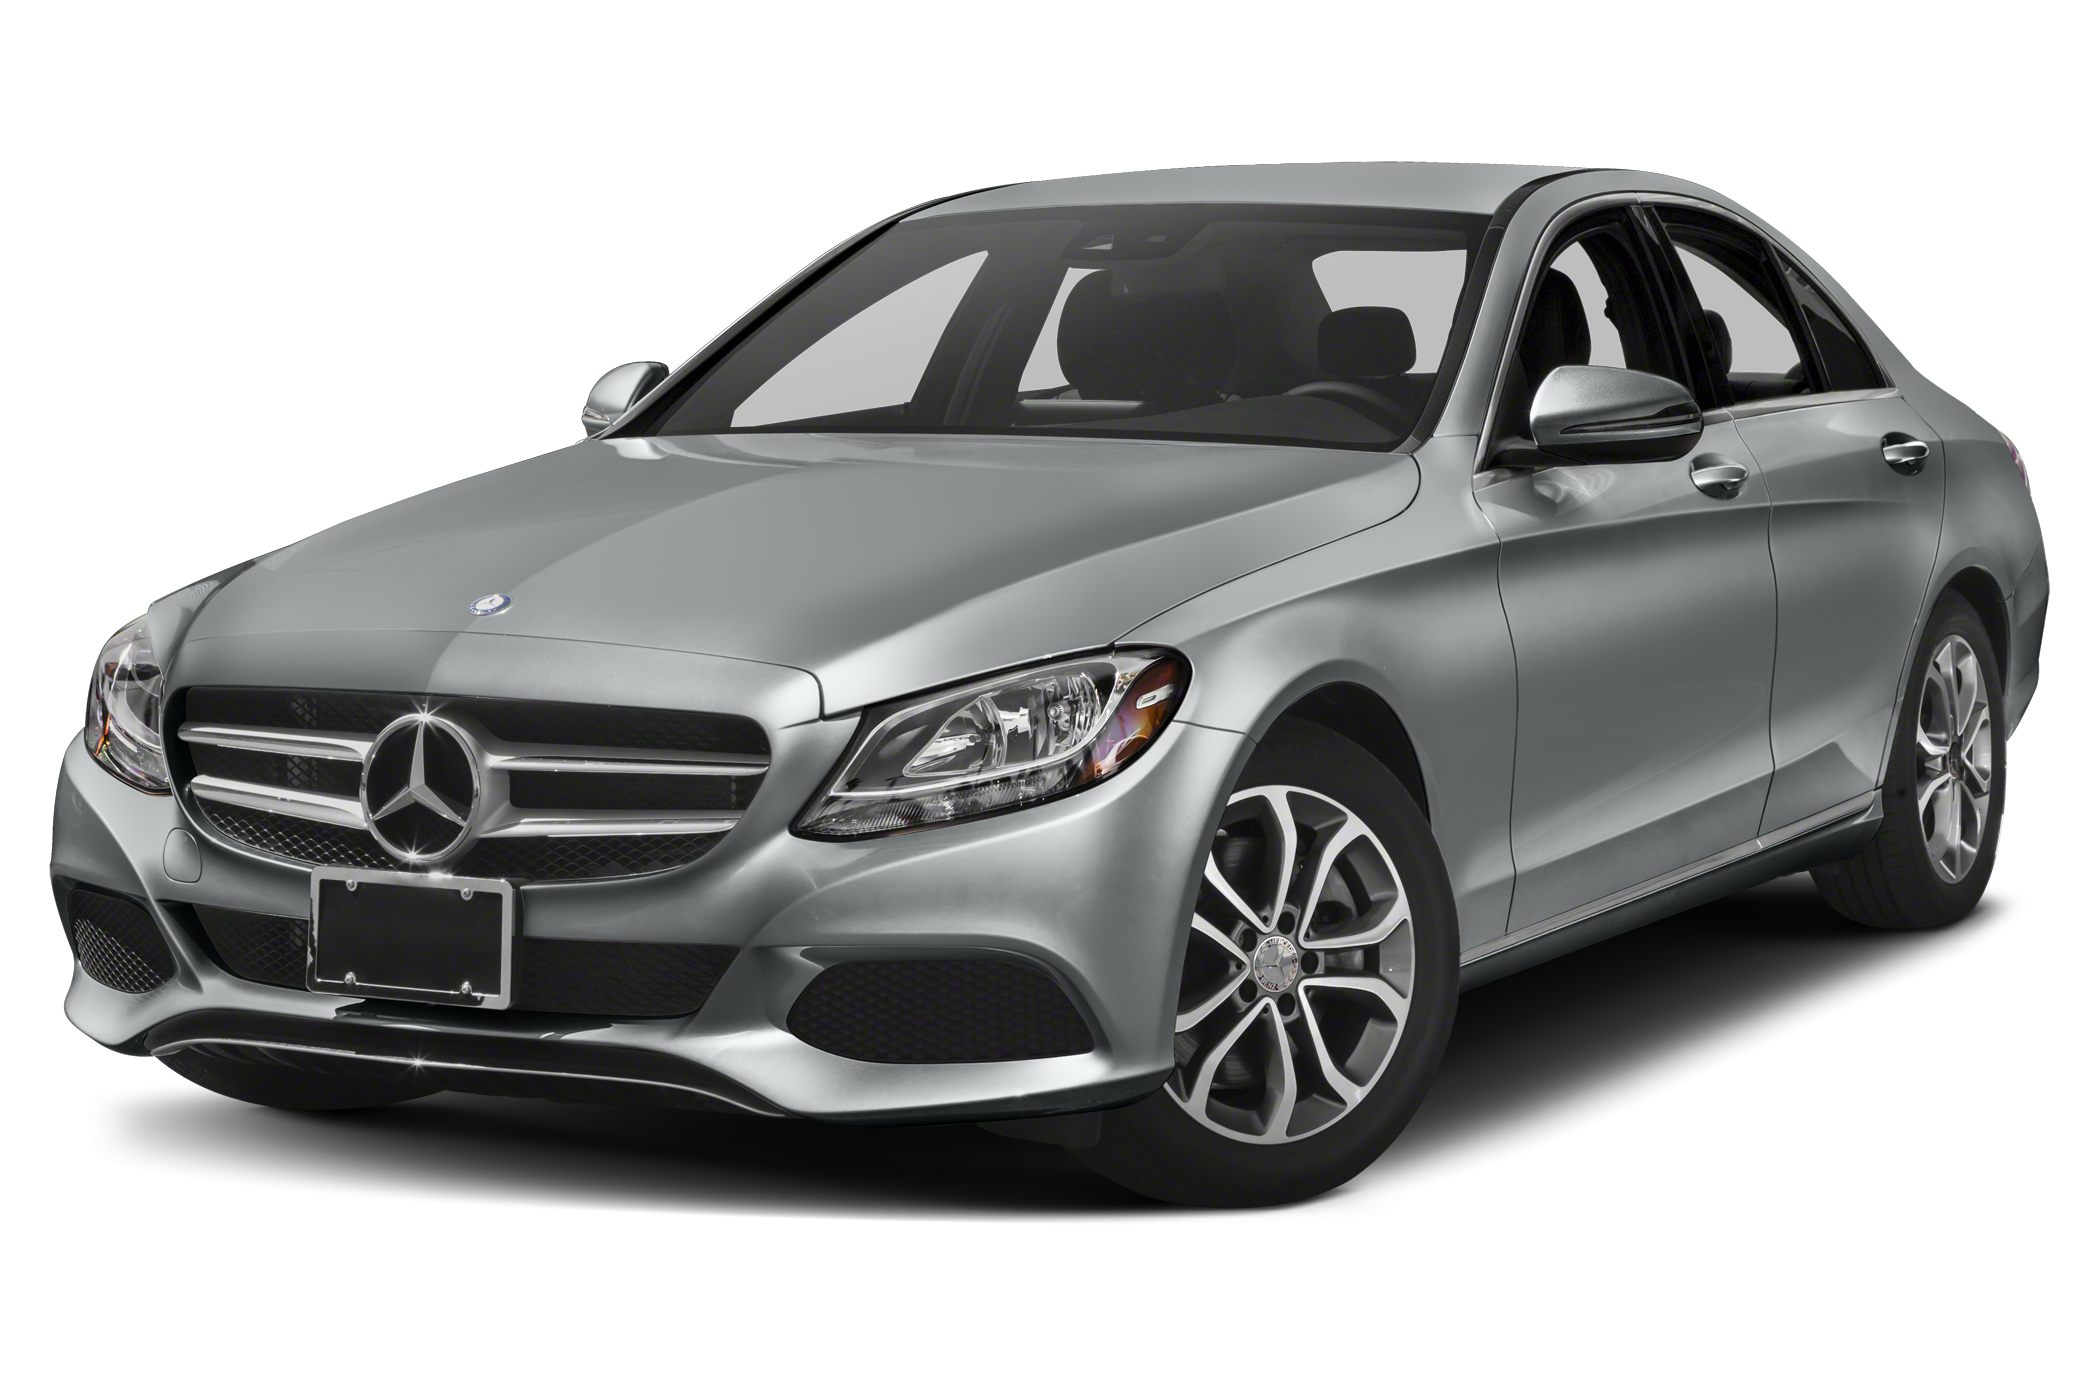 2015 MERCEDES C-Class C 300 4MATIC  WHEN IT COMES TOEXCELLENCE IN USED CAR SALESYOU KNOW YOU